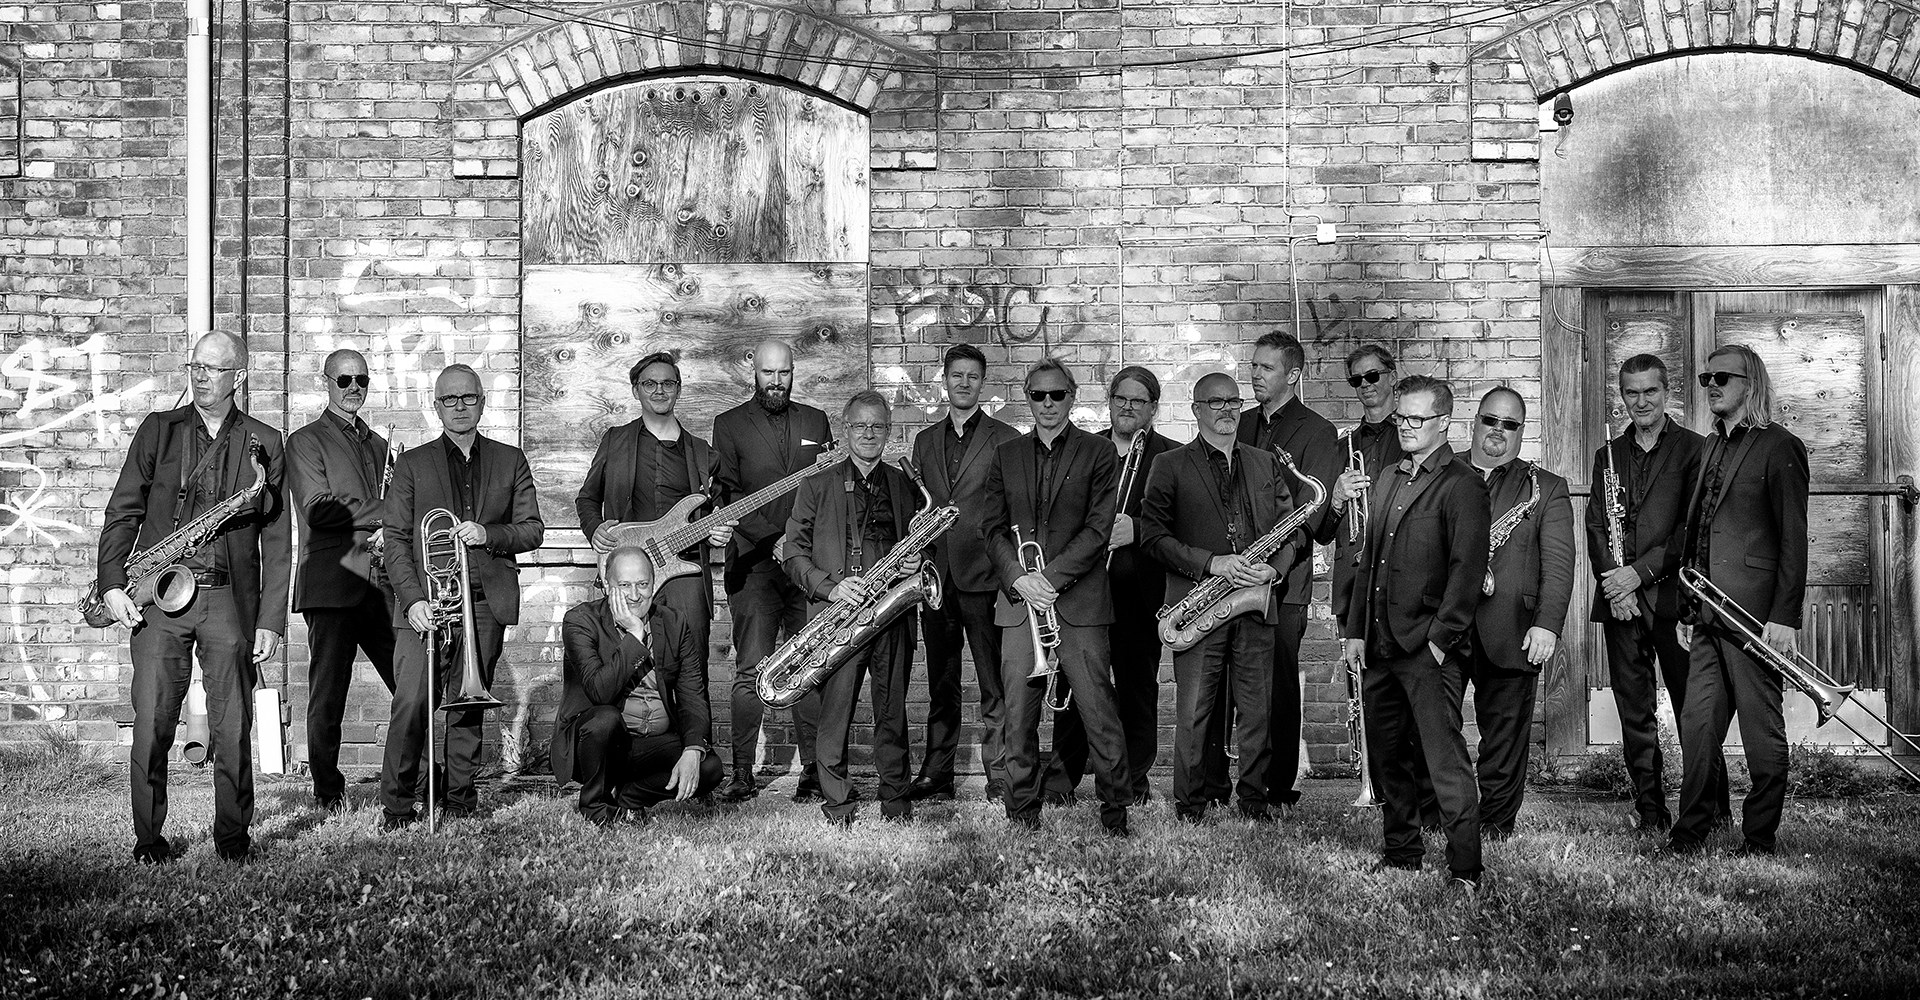 Tellus_norrbotten-big-band-foto-anders-alm-3-bw